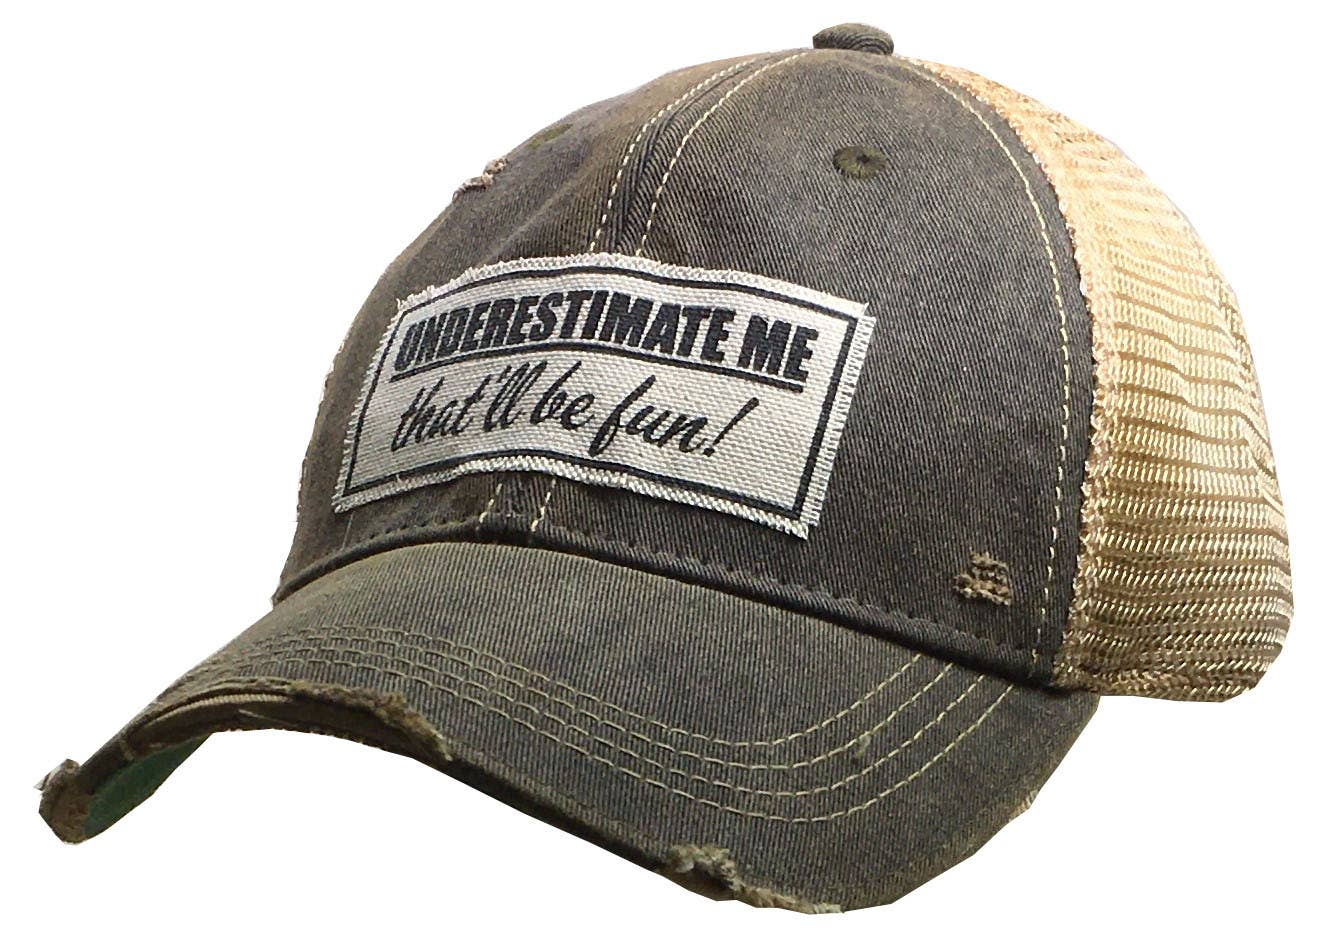 Underestimate Me That'll be Fun Trucker Hat Baseball Cap